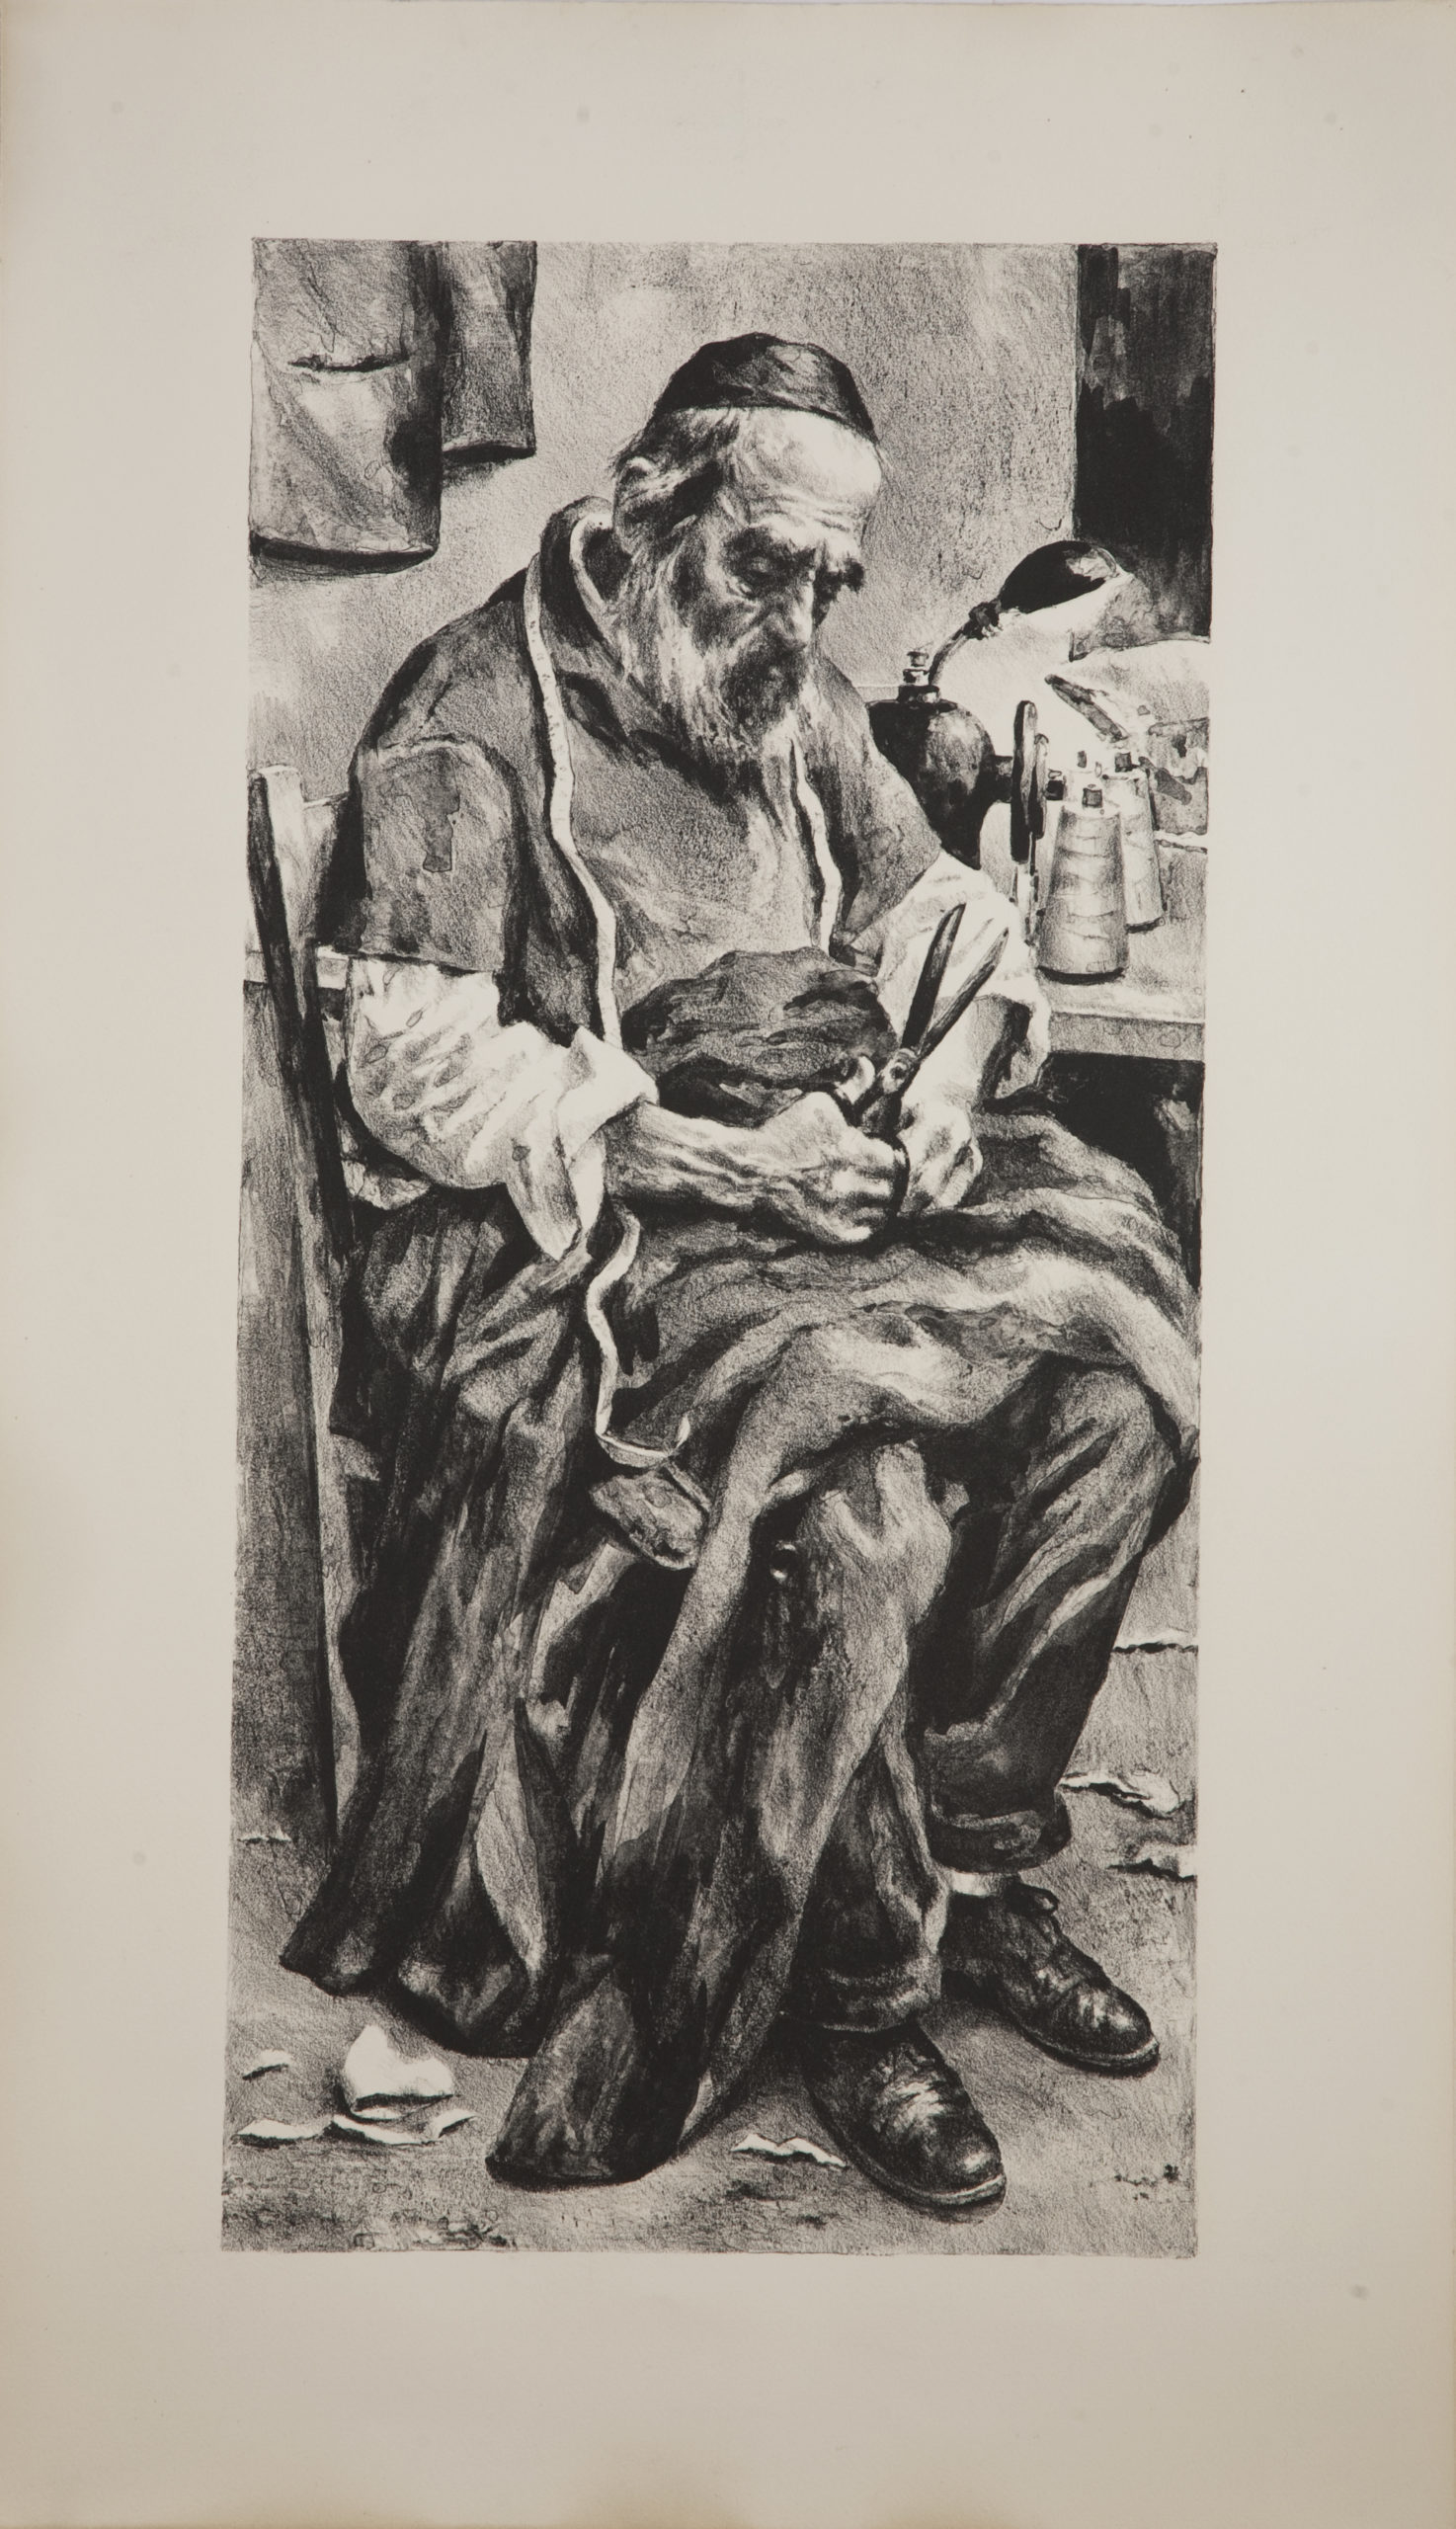 L03B Tailor - Black and White - Lithograph - 17.5 x 30 - Matt - No Frame - $450